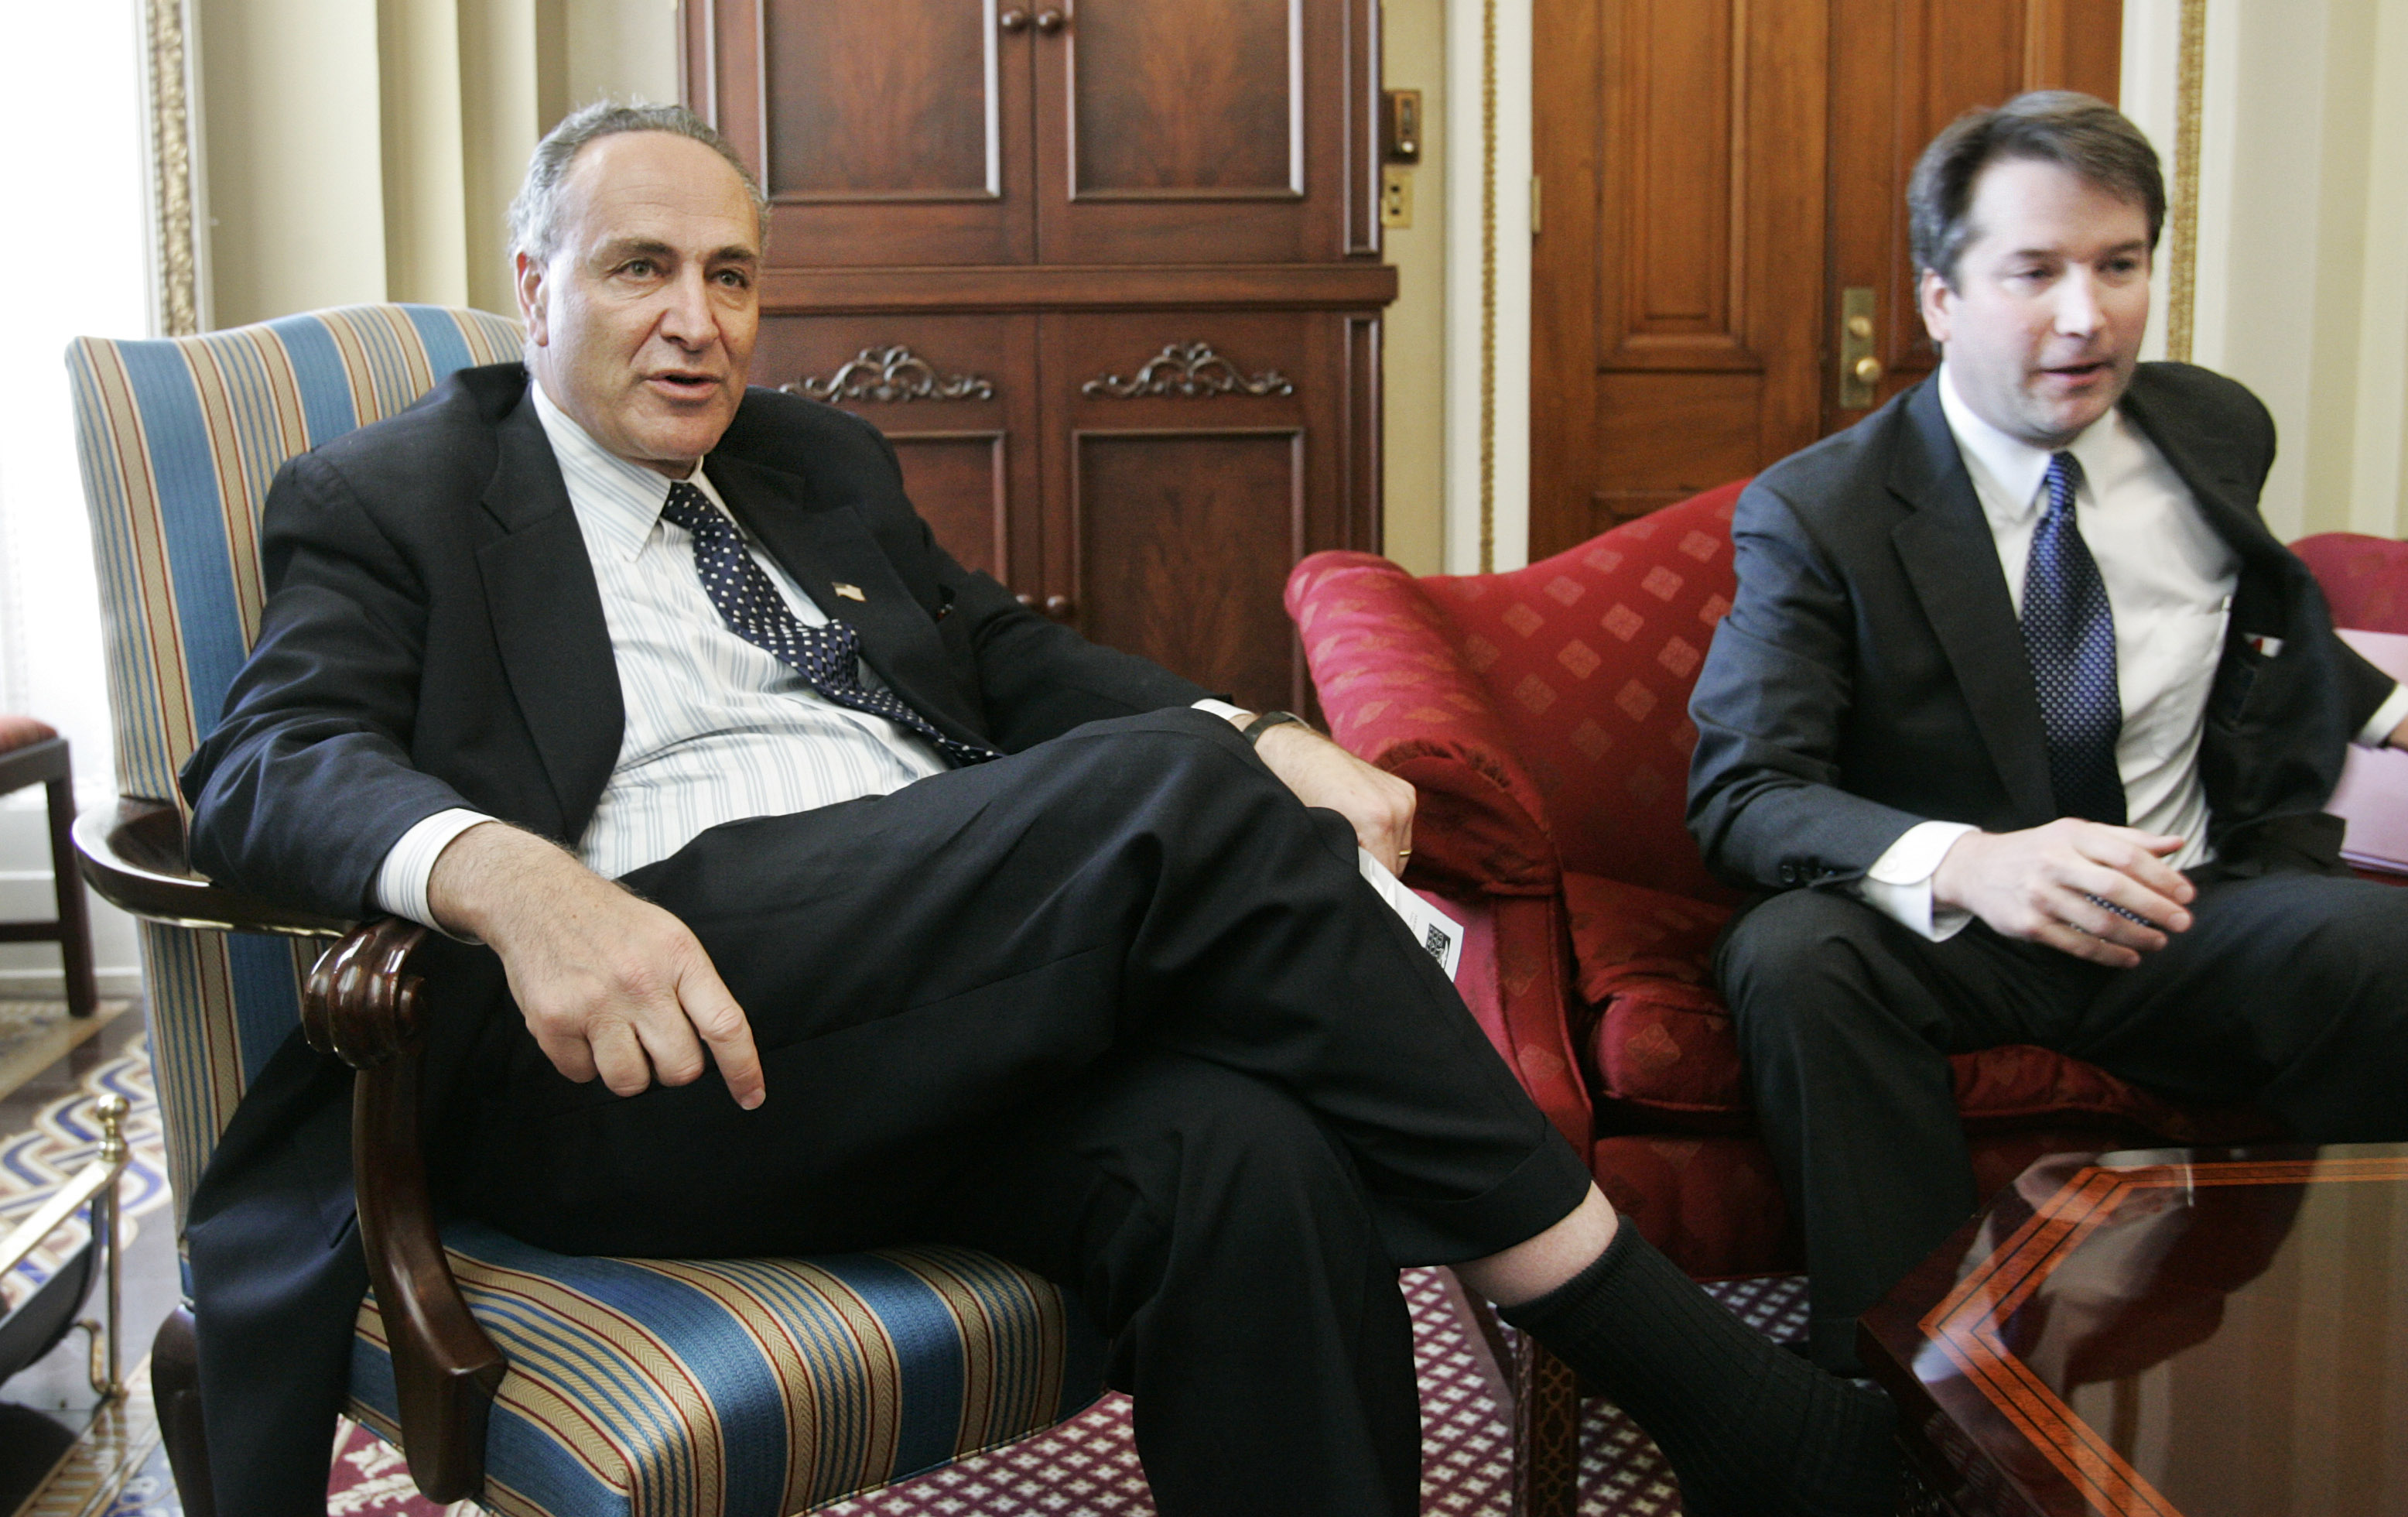 FILE - Sen. Charles Schumer, D-N.Y., meets with Brett Kavanaugh, right, then-nominee for the D.C. Circuit Court, on Capitol Hill, May 2, 2006.